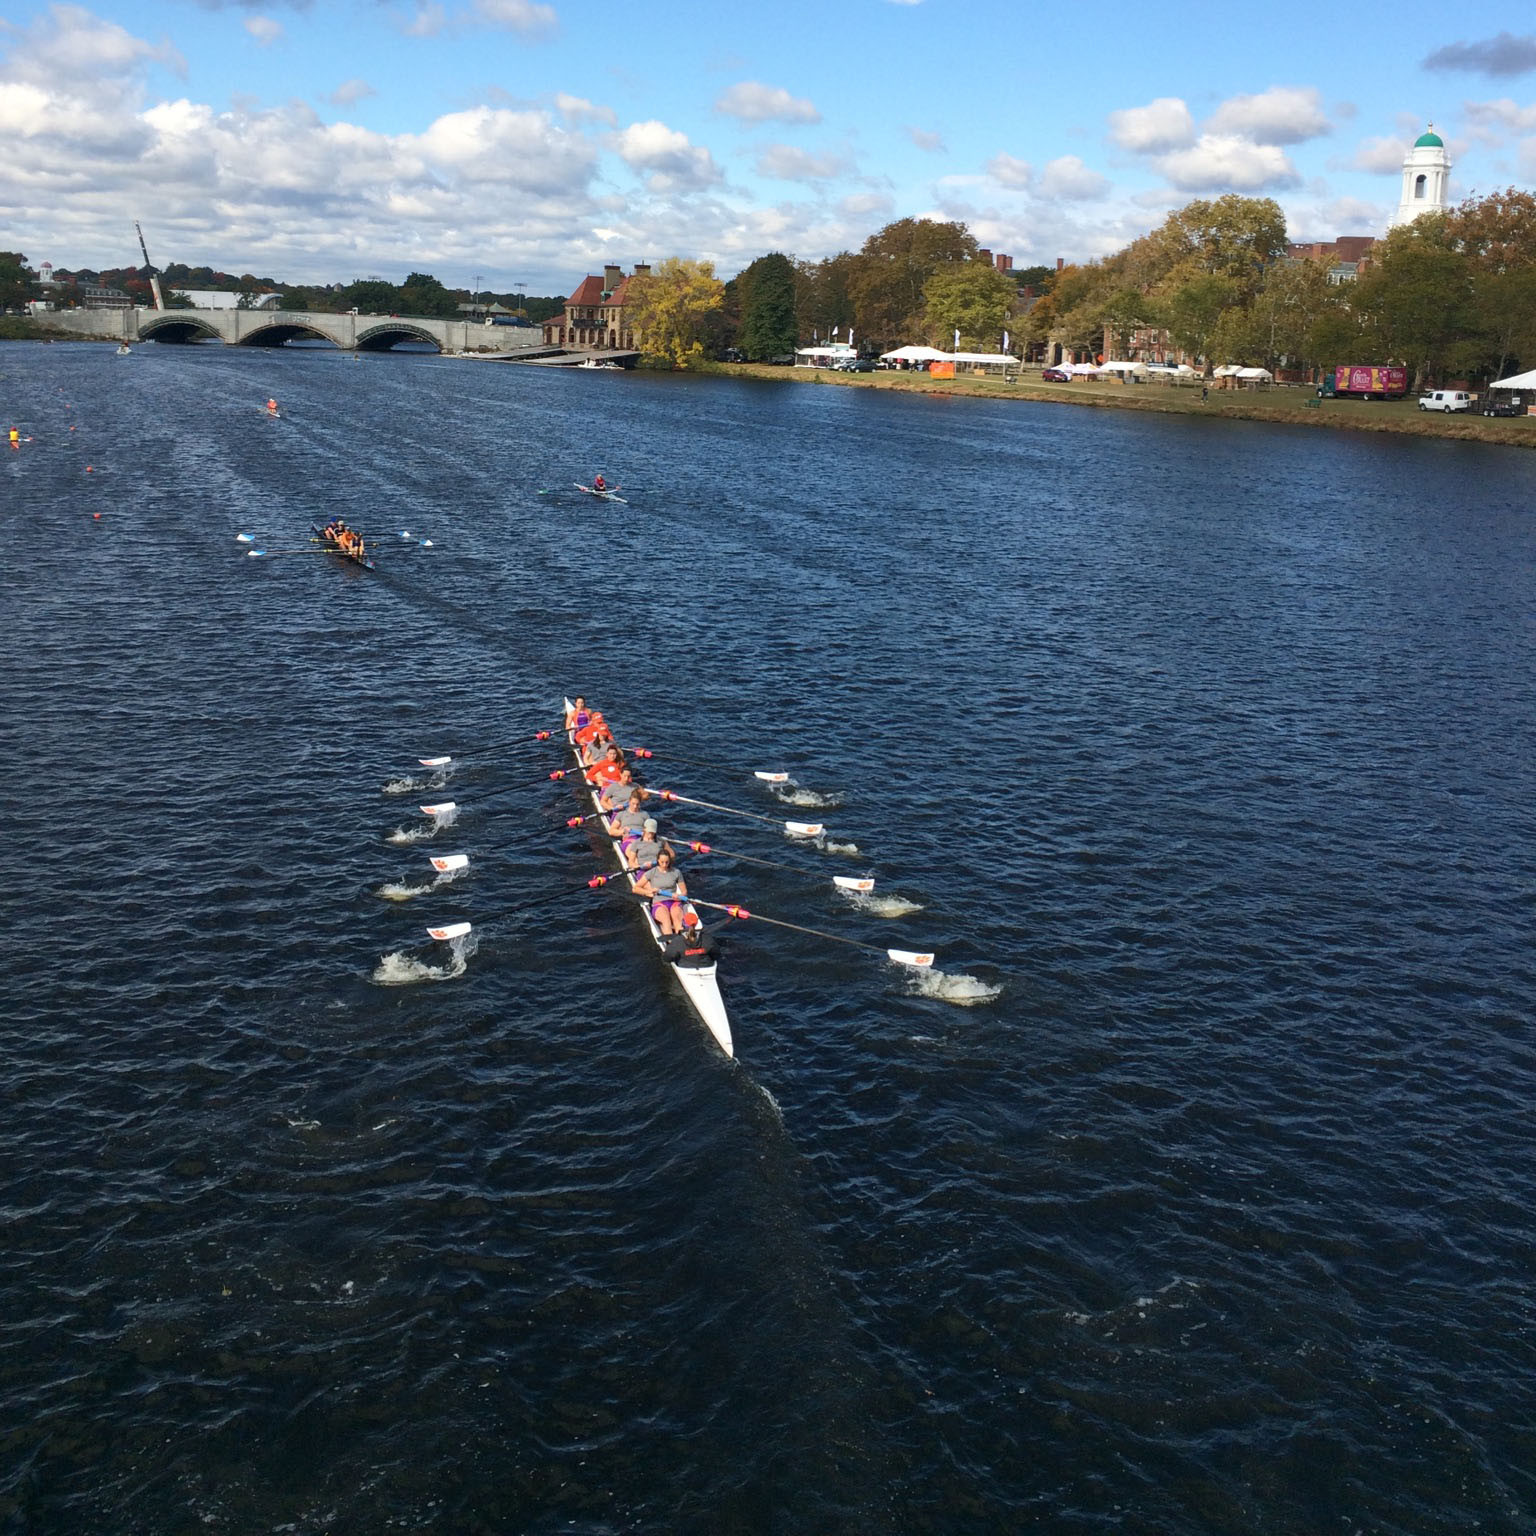 Tigers To Compete In Head of the Hooch